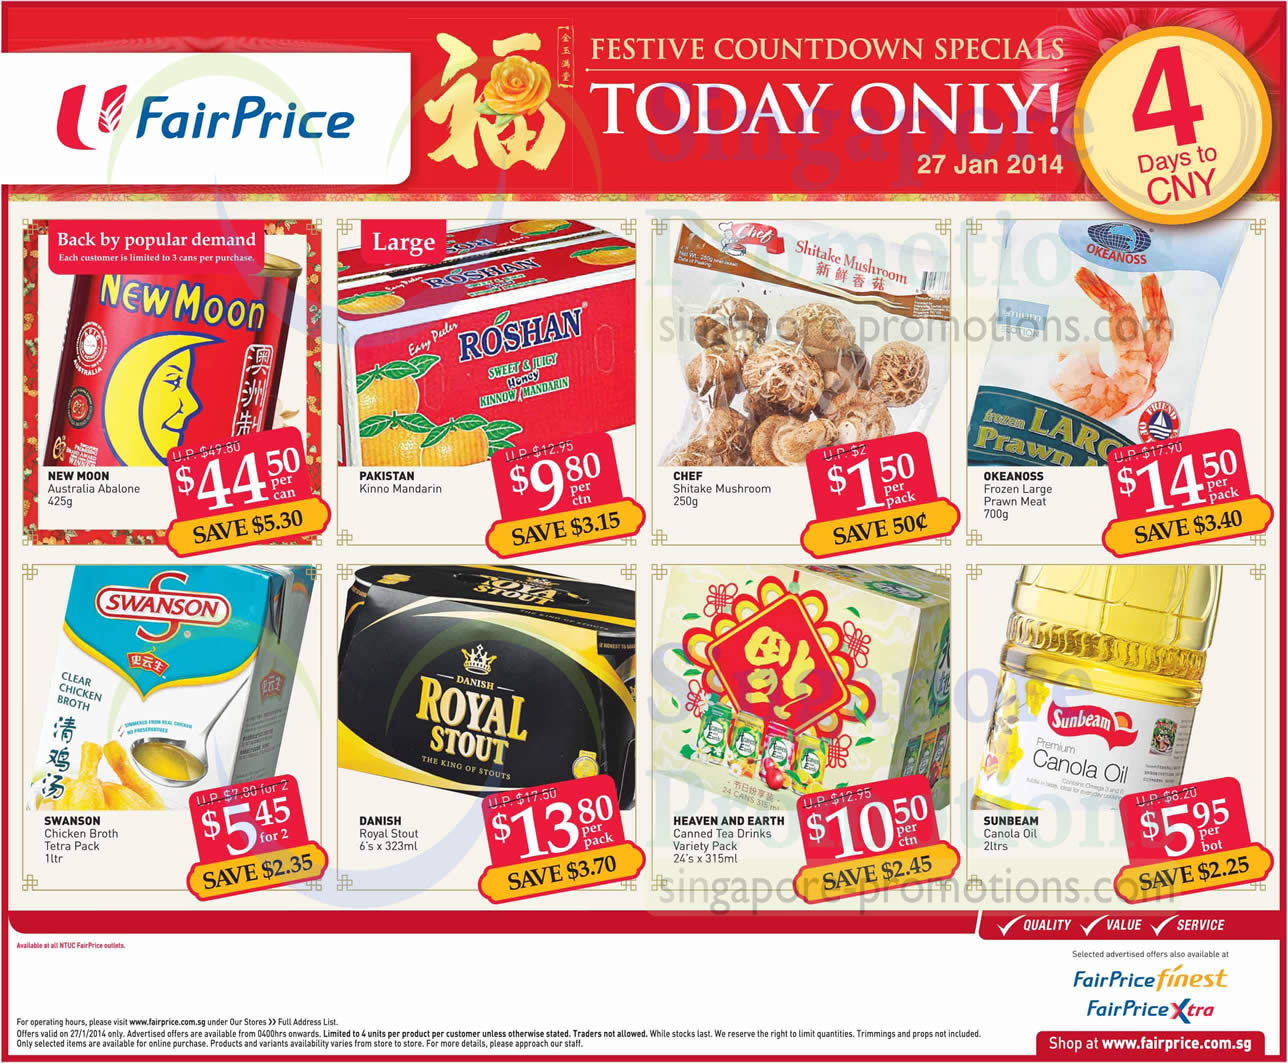 Ntuc Fairprice Abalone Amp Other Cny One Day Offers 27 Jan 2014